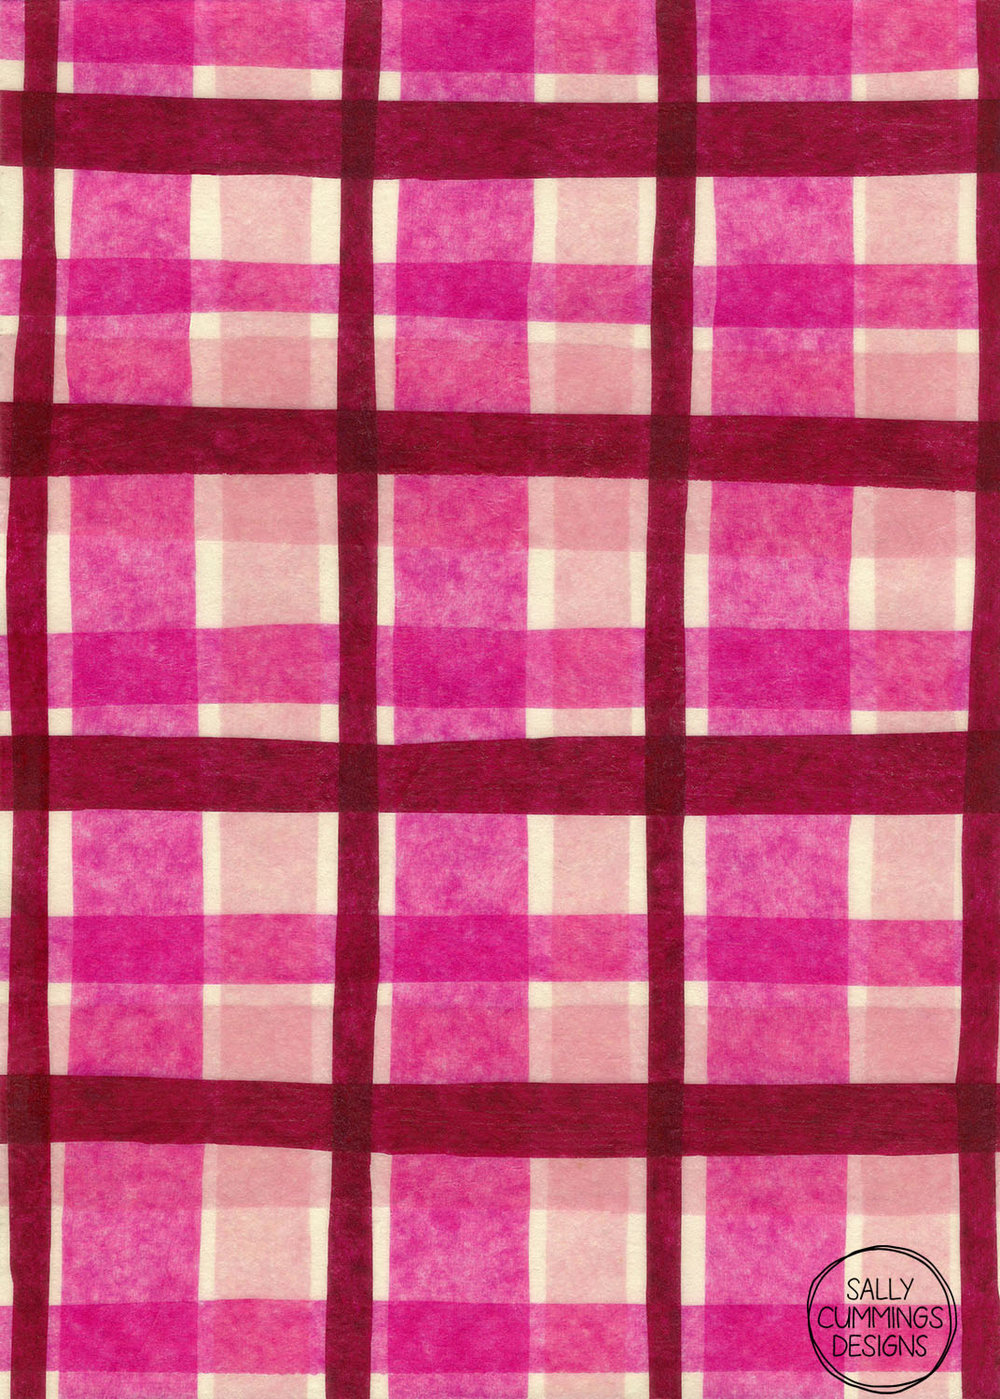 Sally Cummings Designs - Tissue Paper Plaid pattern (pink)